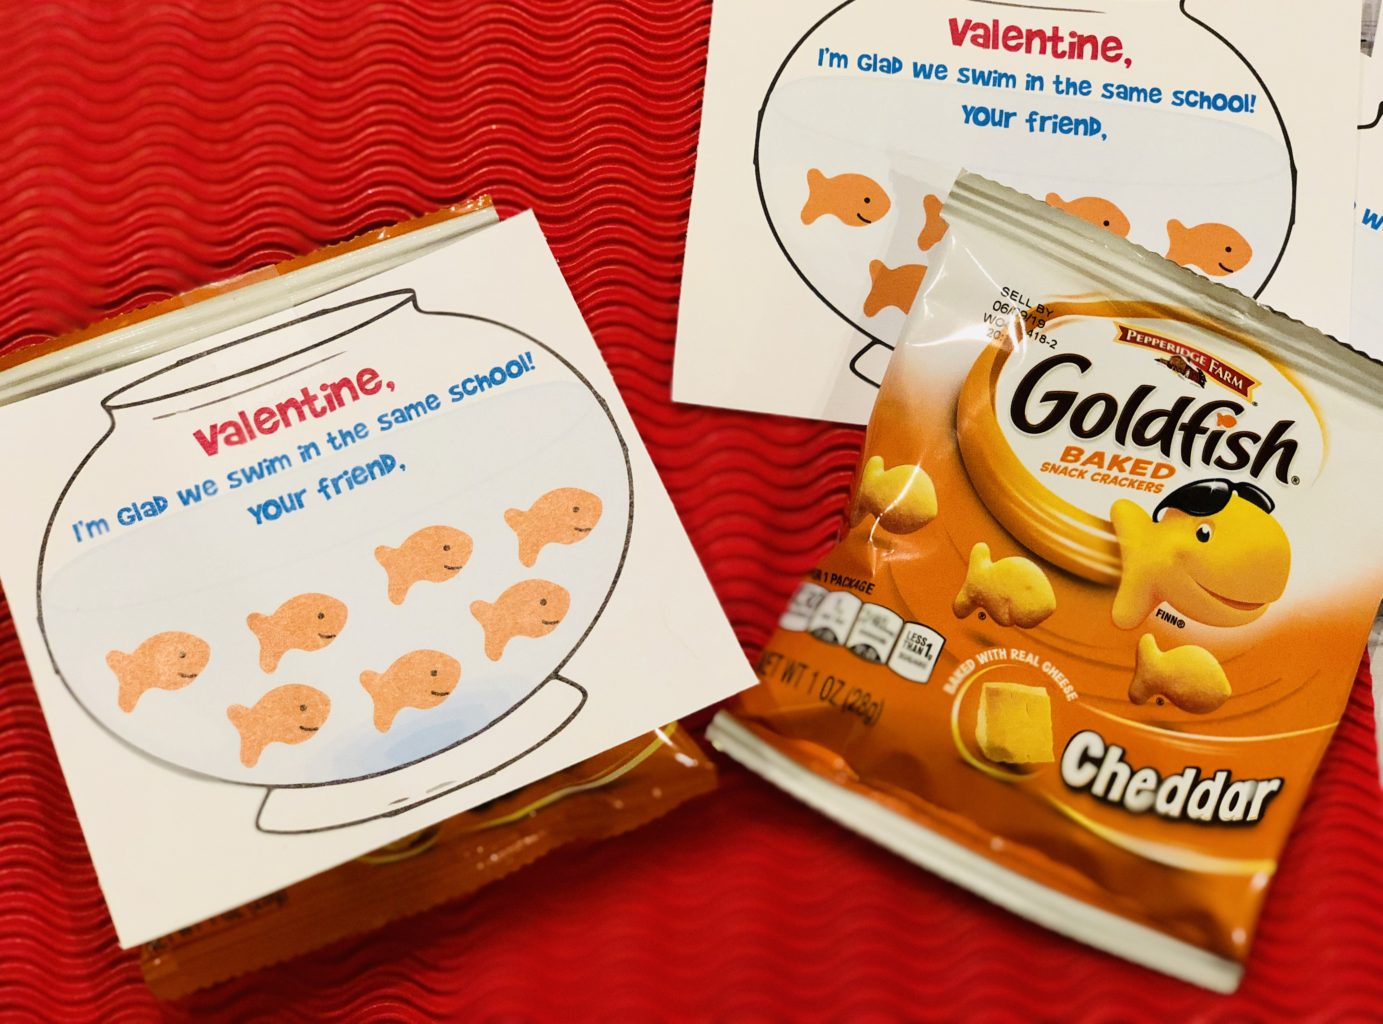 photograph about Goldfish Valentine Printable called Baby Goldfish Valentine Printable #NeverDoneWithFun